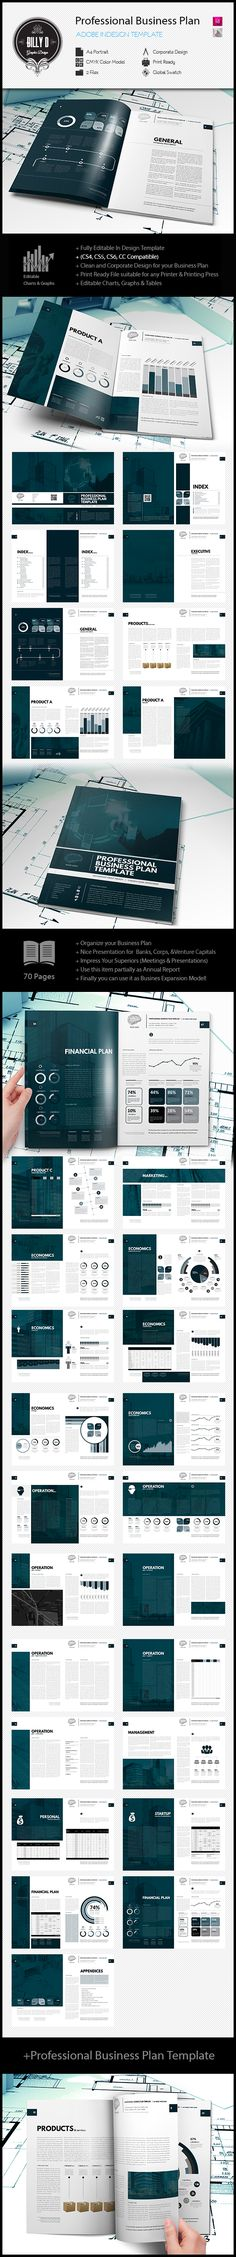 Professional Business Plan Template | The business plan consists of a narrative…